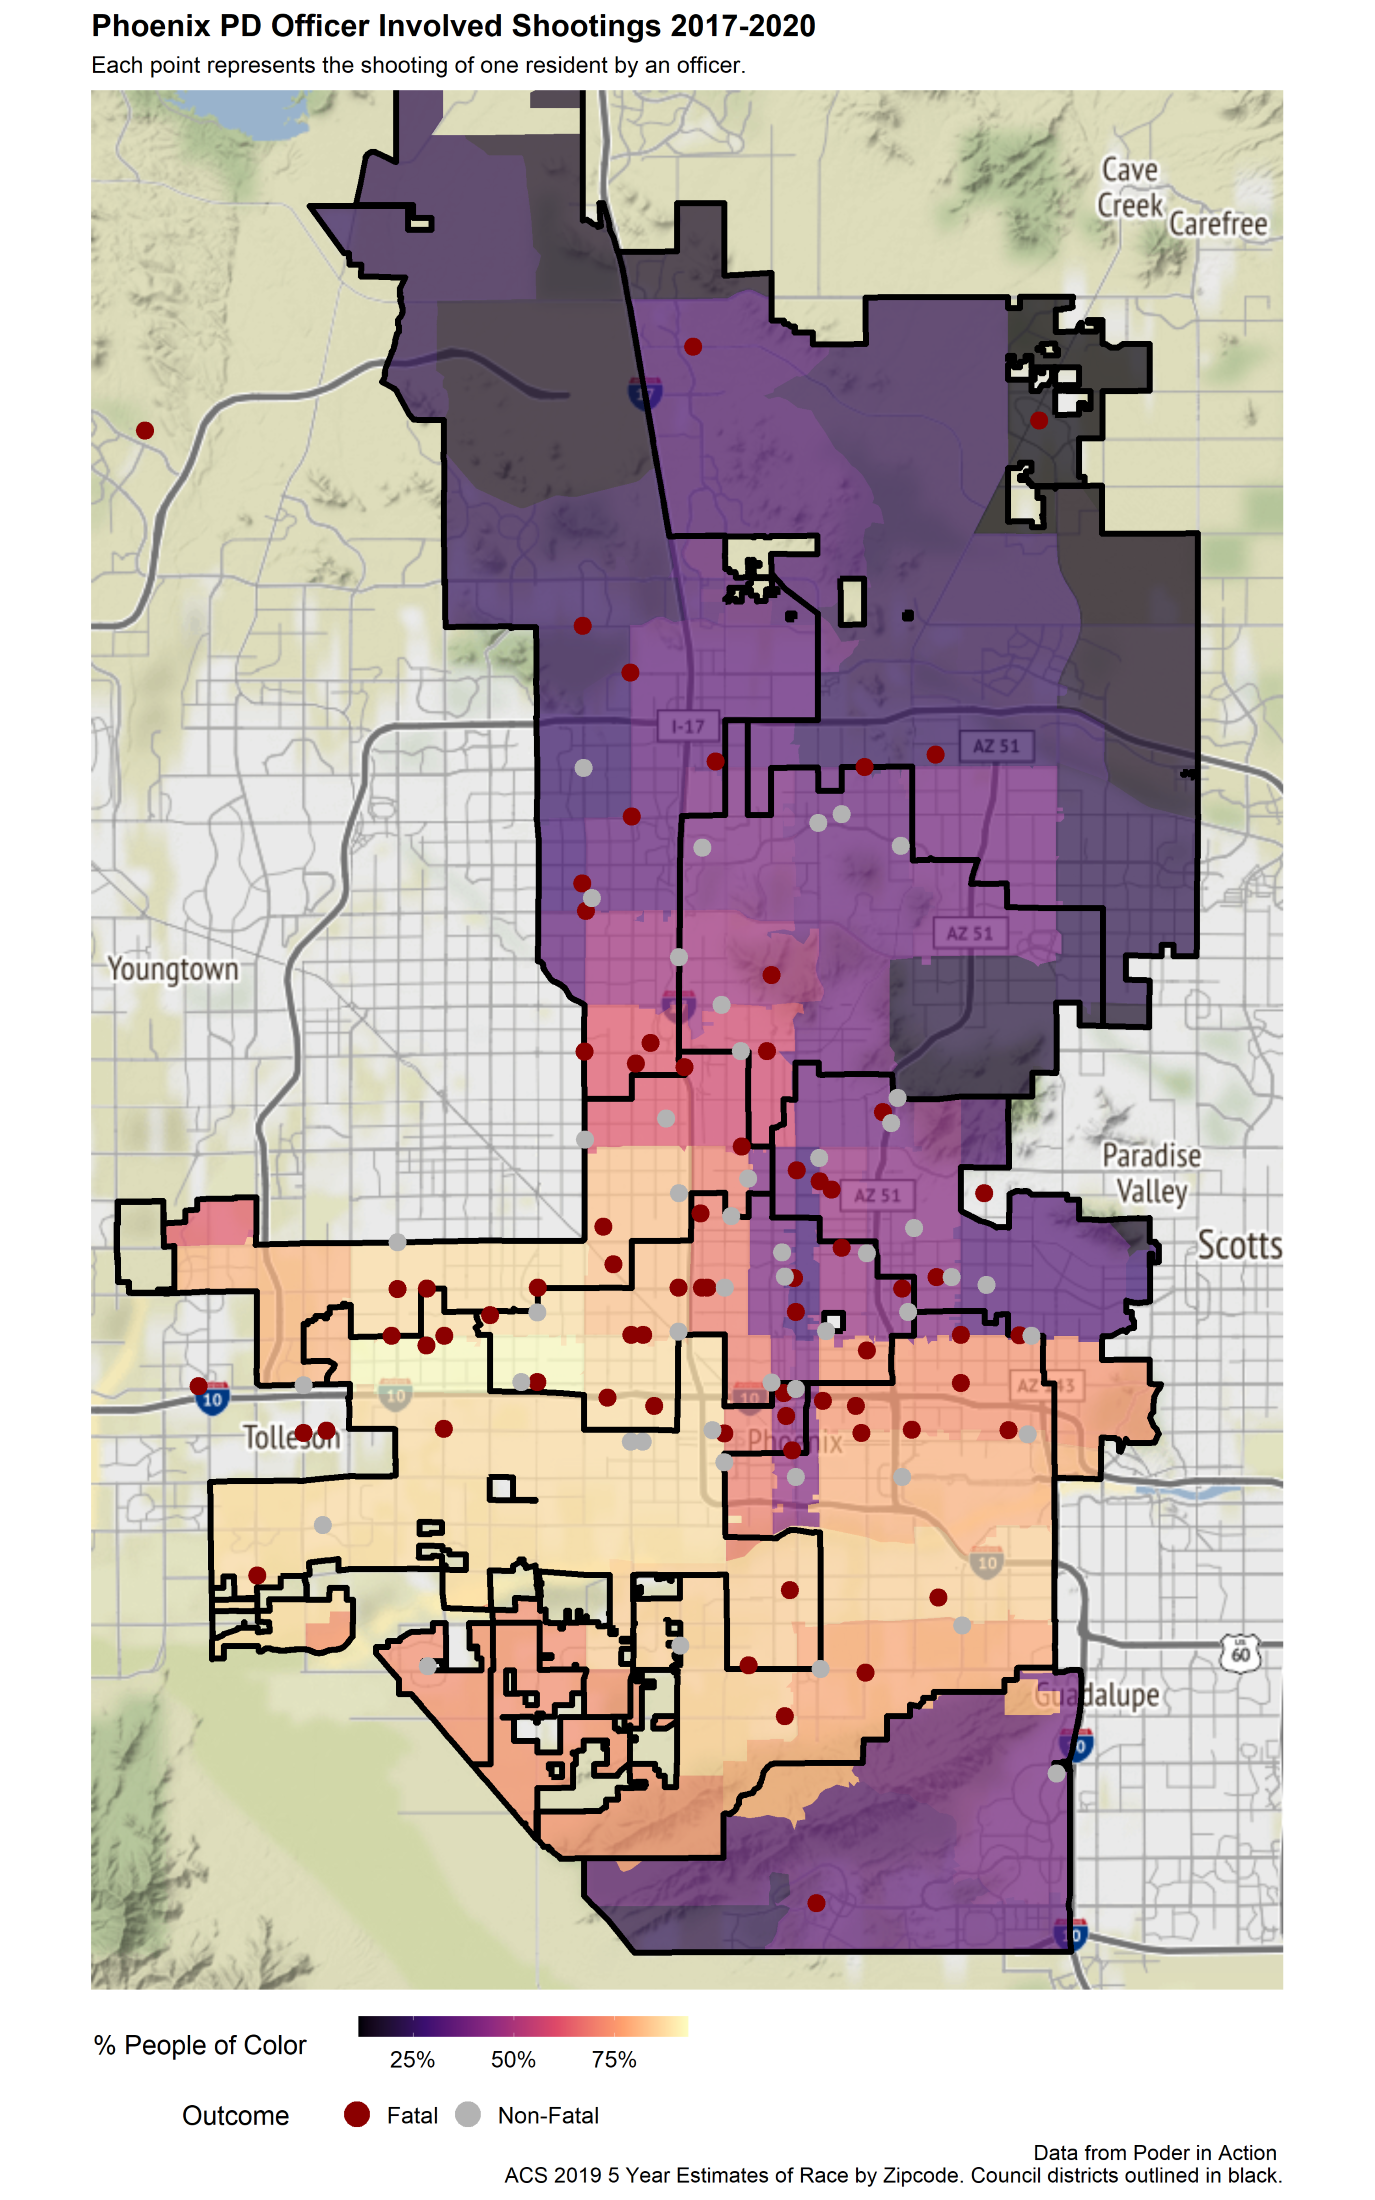 Mapping OIS shootings and communities of color in Phoenix